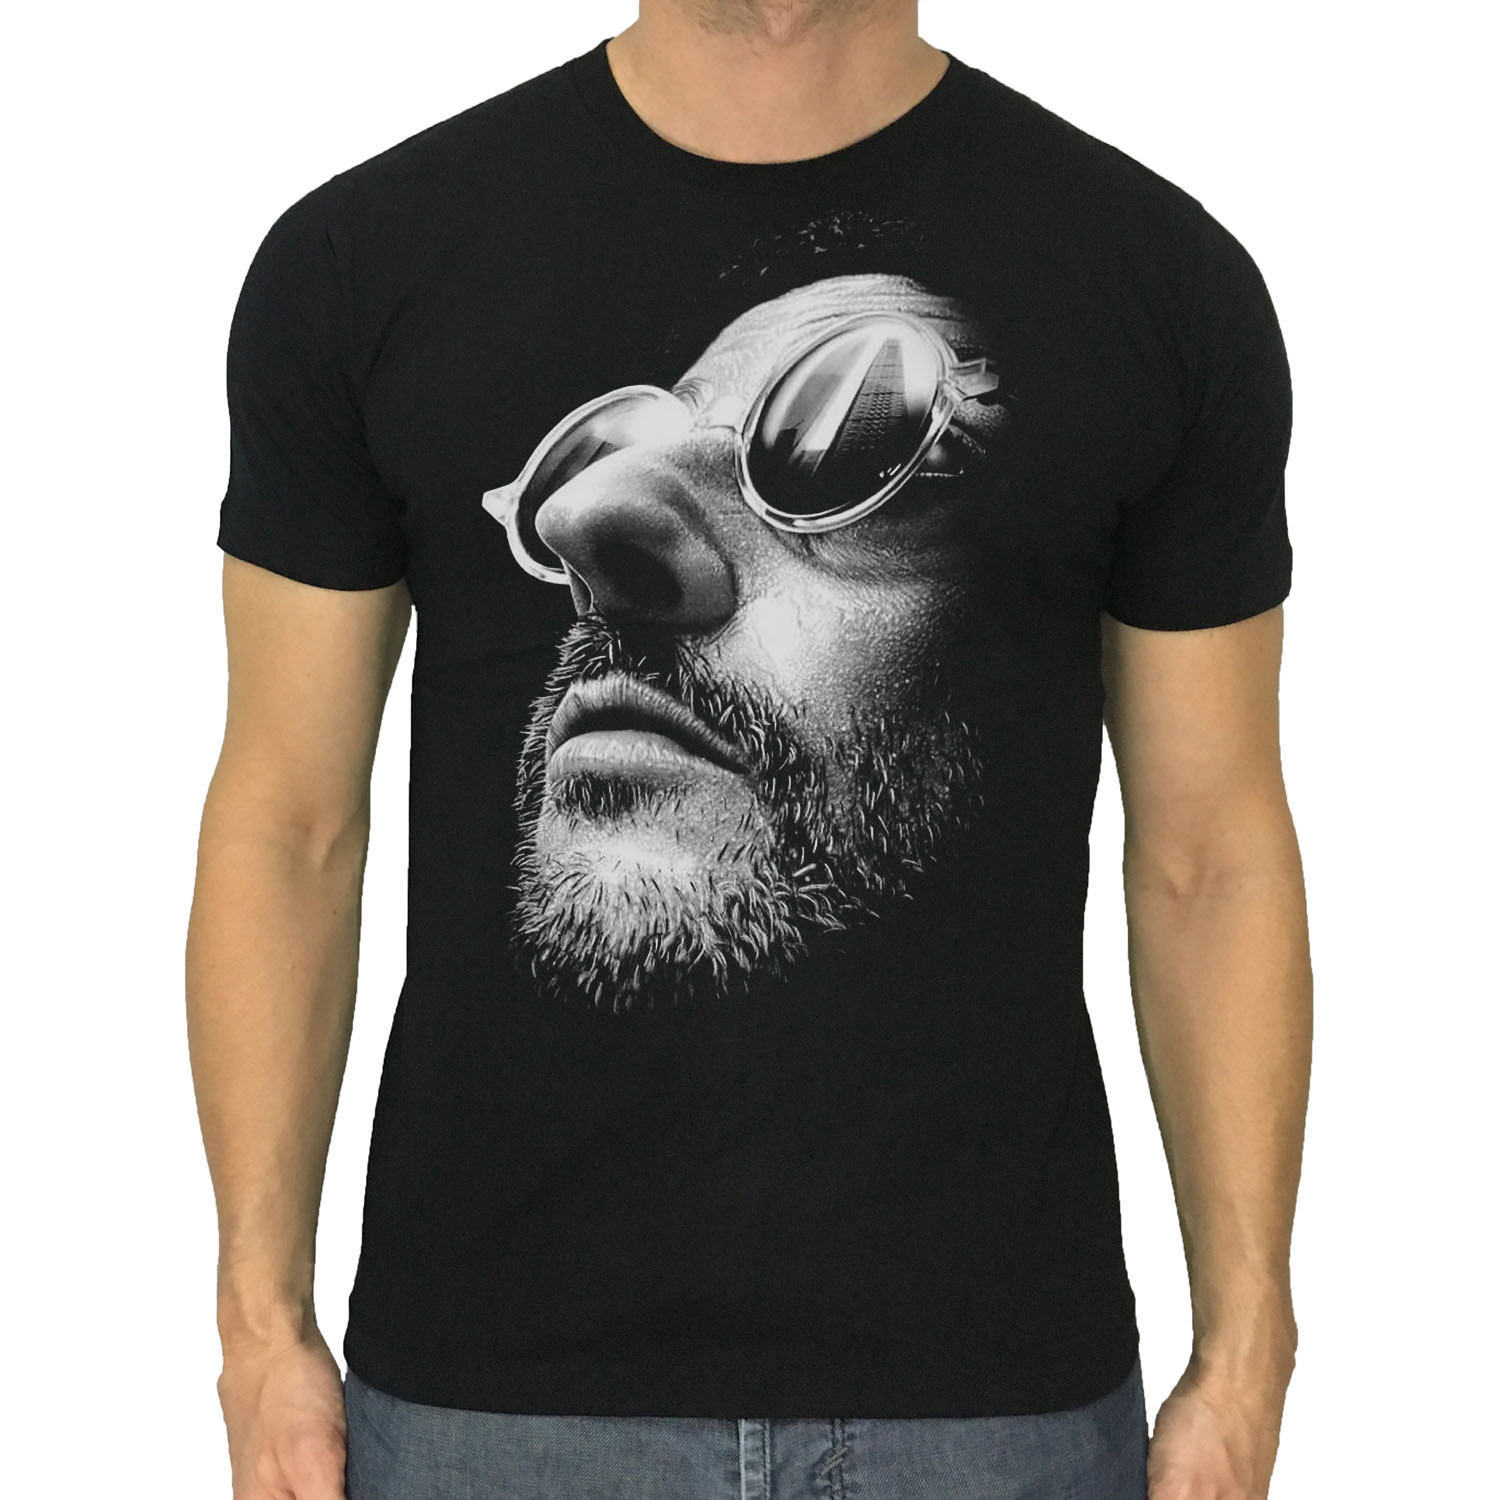 Jean Reno t-shirt LEON The Professional new men black or dark grey S to 2XL